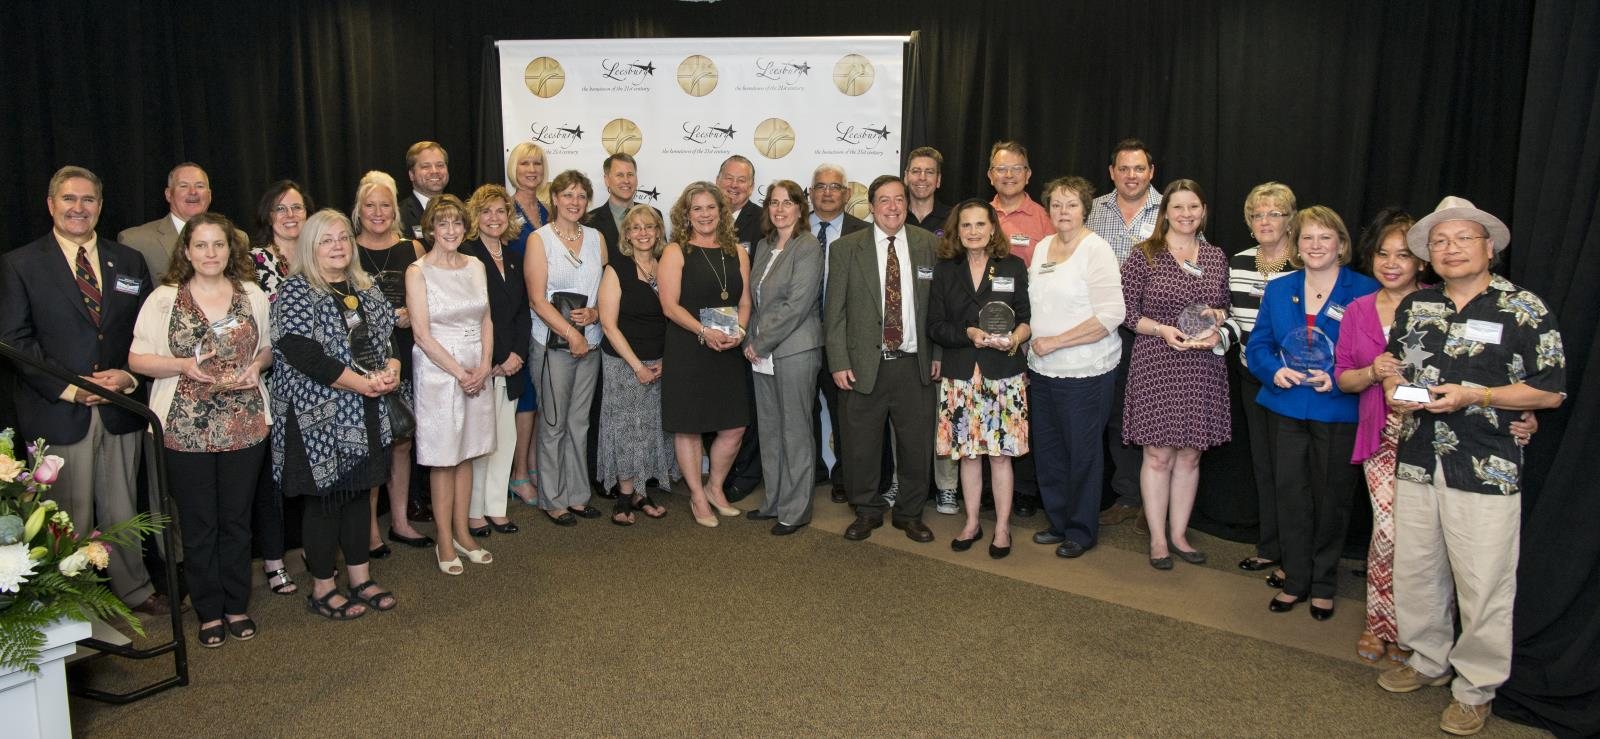 2017 Leesburg Business Award Winners.